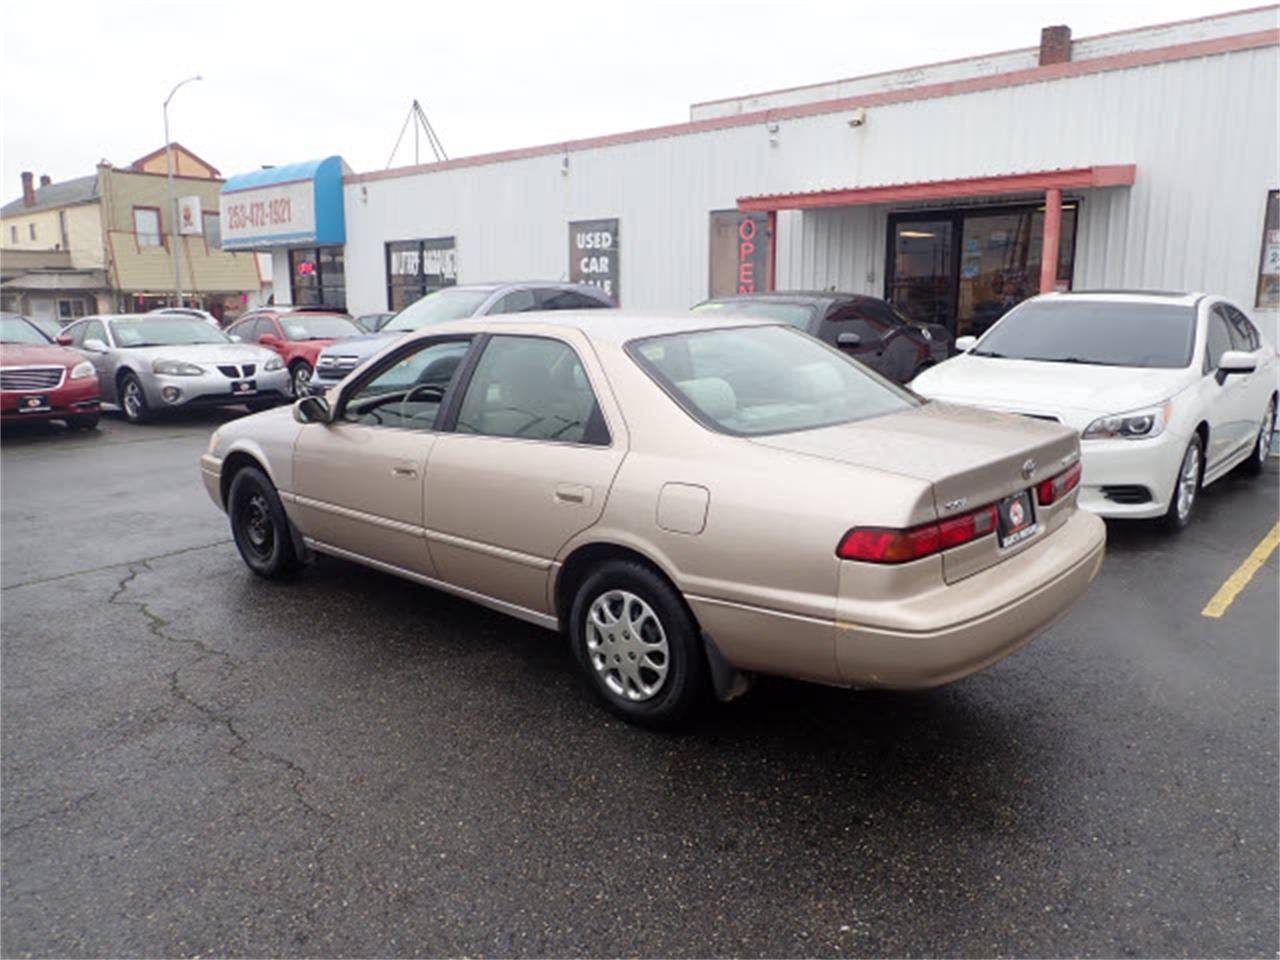 1999 Toyota Camry for sale in Tacoma, WA – photo 3